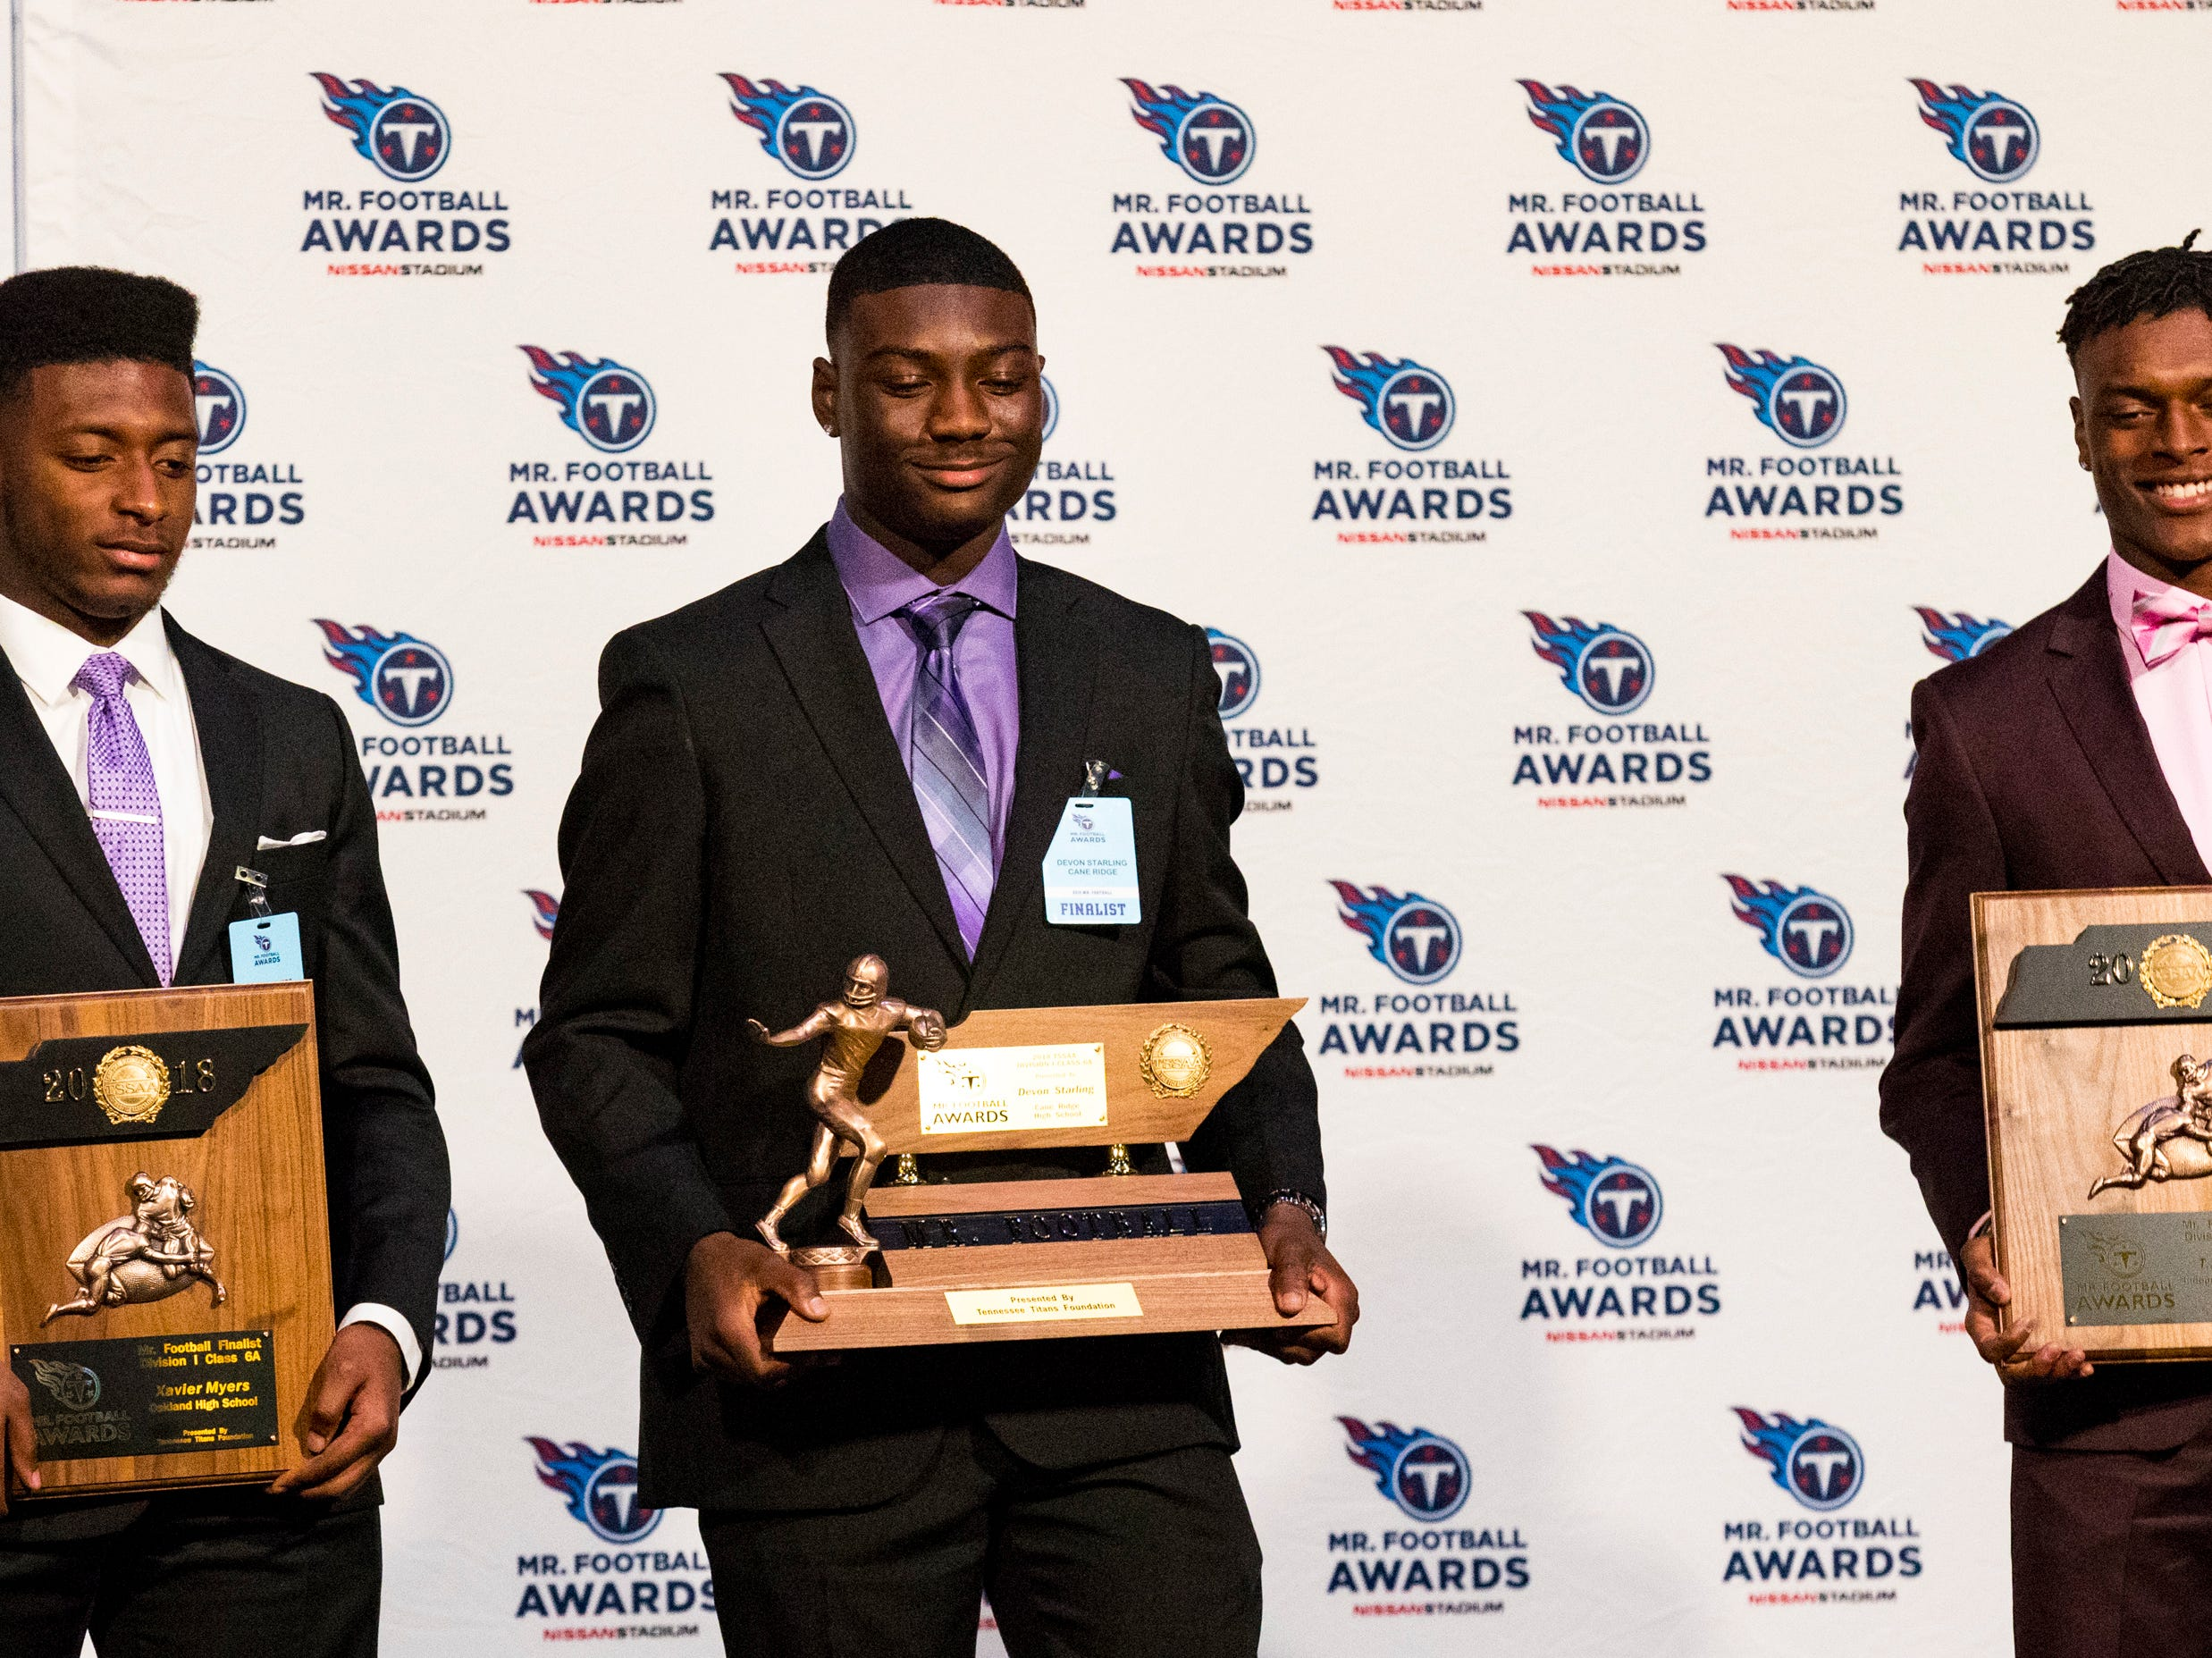 Division 1 Class 6A Mr. Football Devon Starling is flanked by finalists Xavier Myers, left, and T.J. Sheffield during the 2018 Titans Mr. Football Awards Dinner at Nissan Stadium in Nashville on Sunday, Nov. 25, 2018.